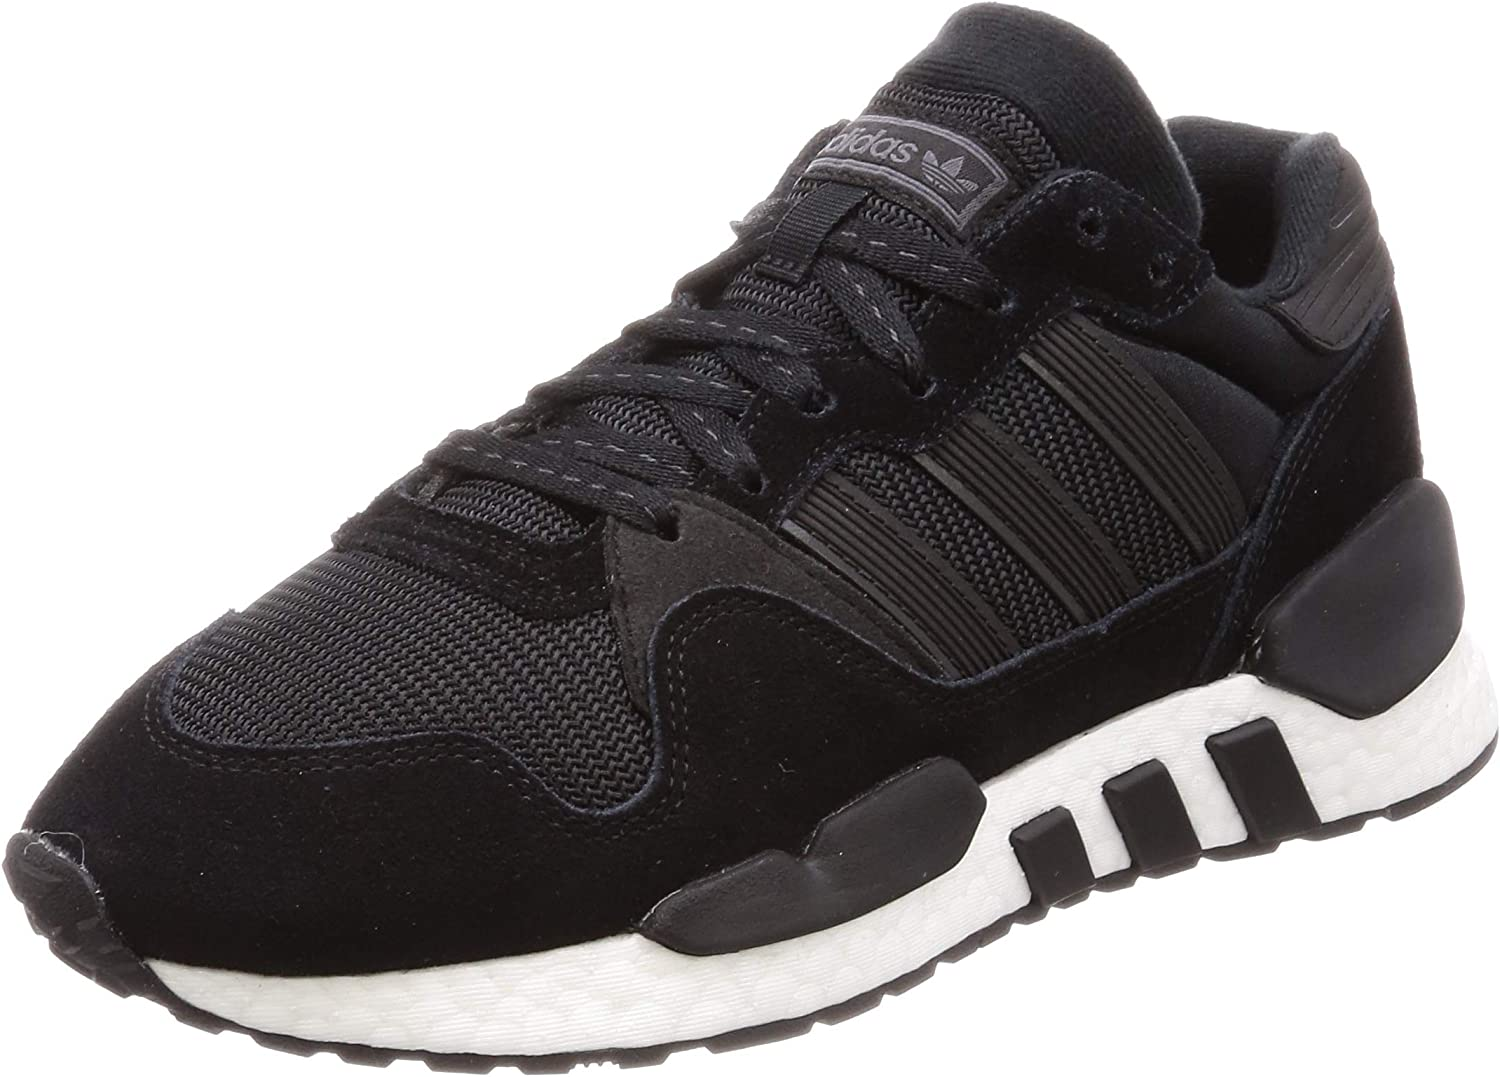 adidas ZX930 x EQT Never Made Triple Black: